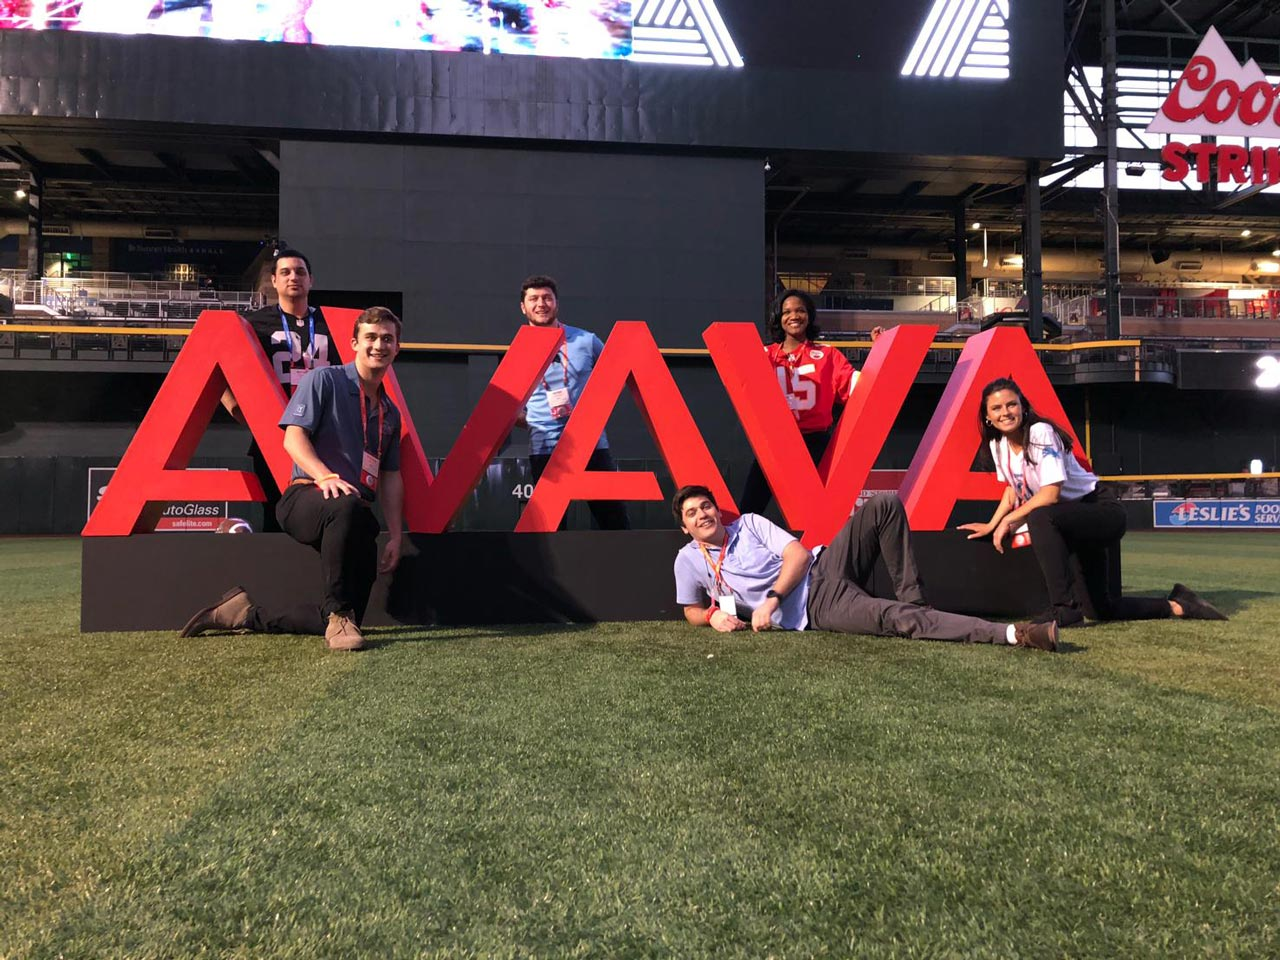 Avaya team members at a statue of large Avaya logo